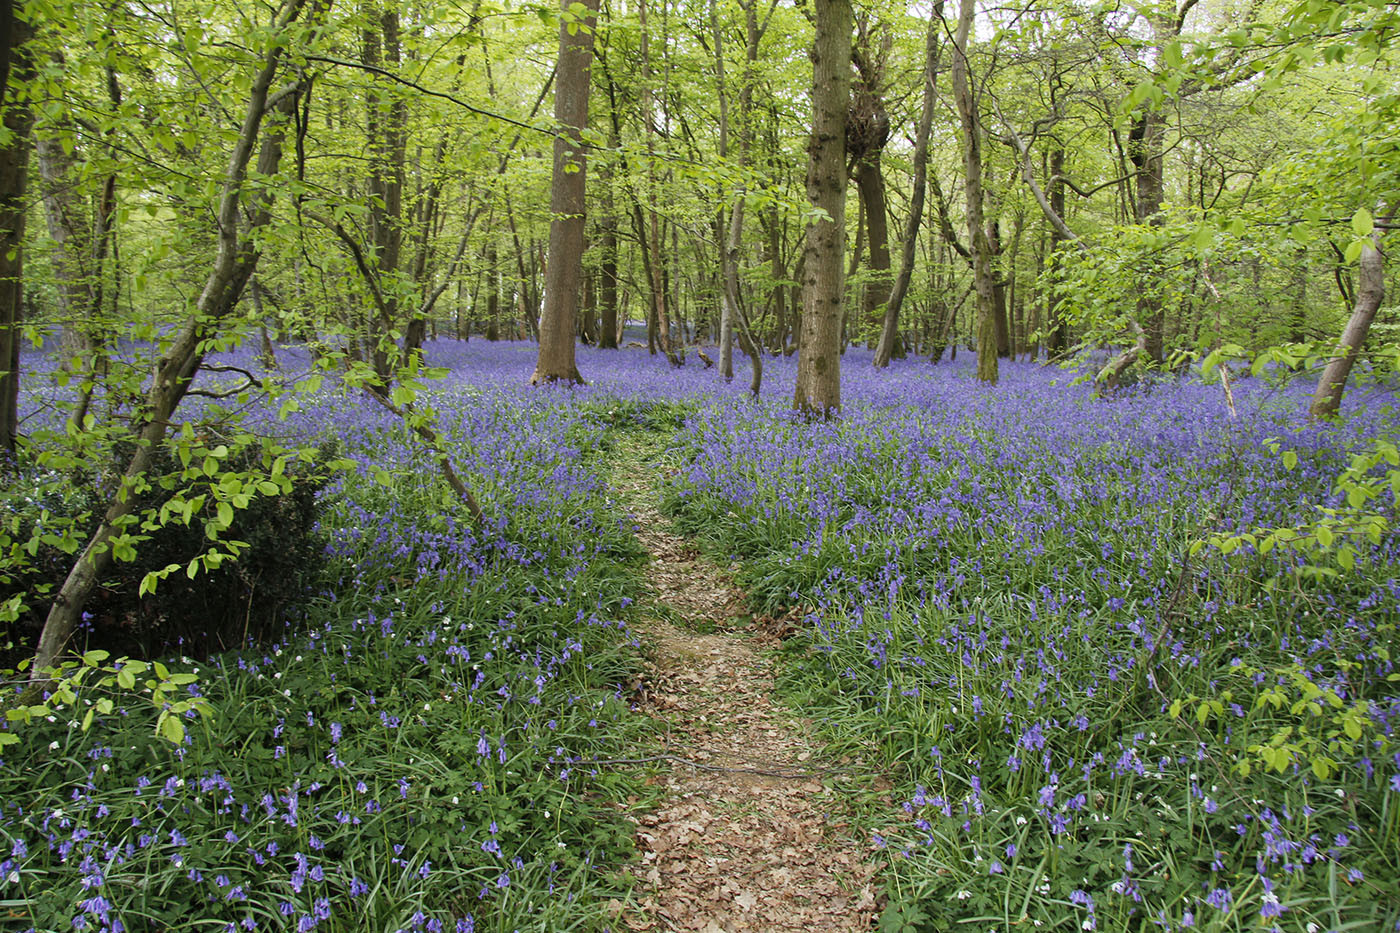 17 BLUEBELLS AT BATES GREEN FARM ARLINGTON by Trevor Brand